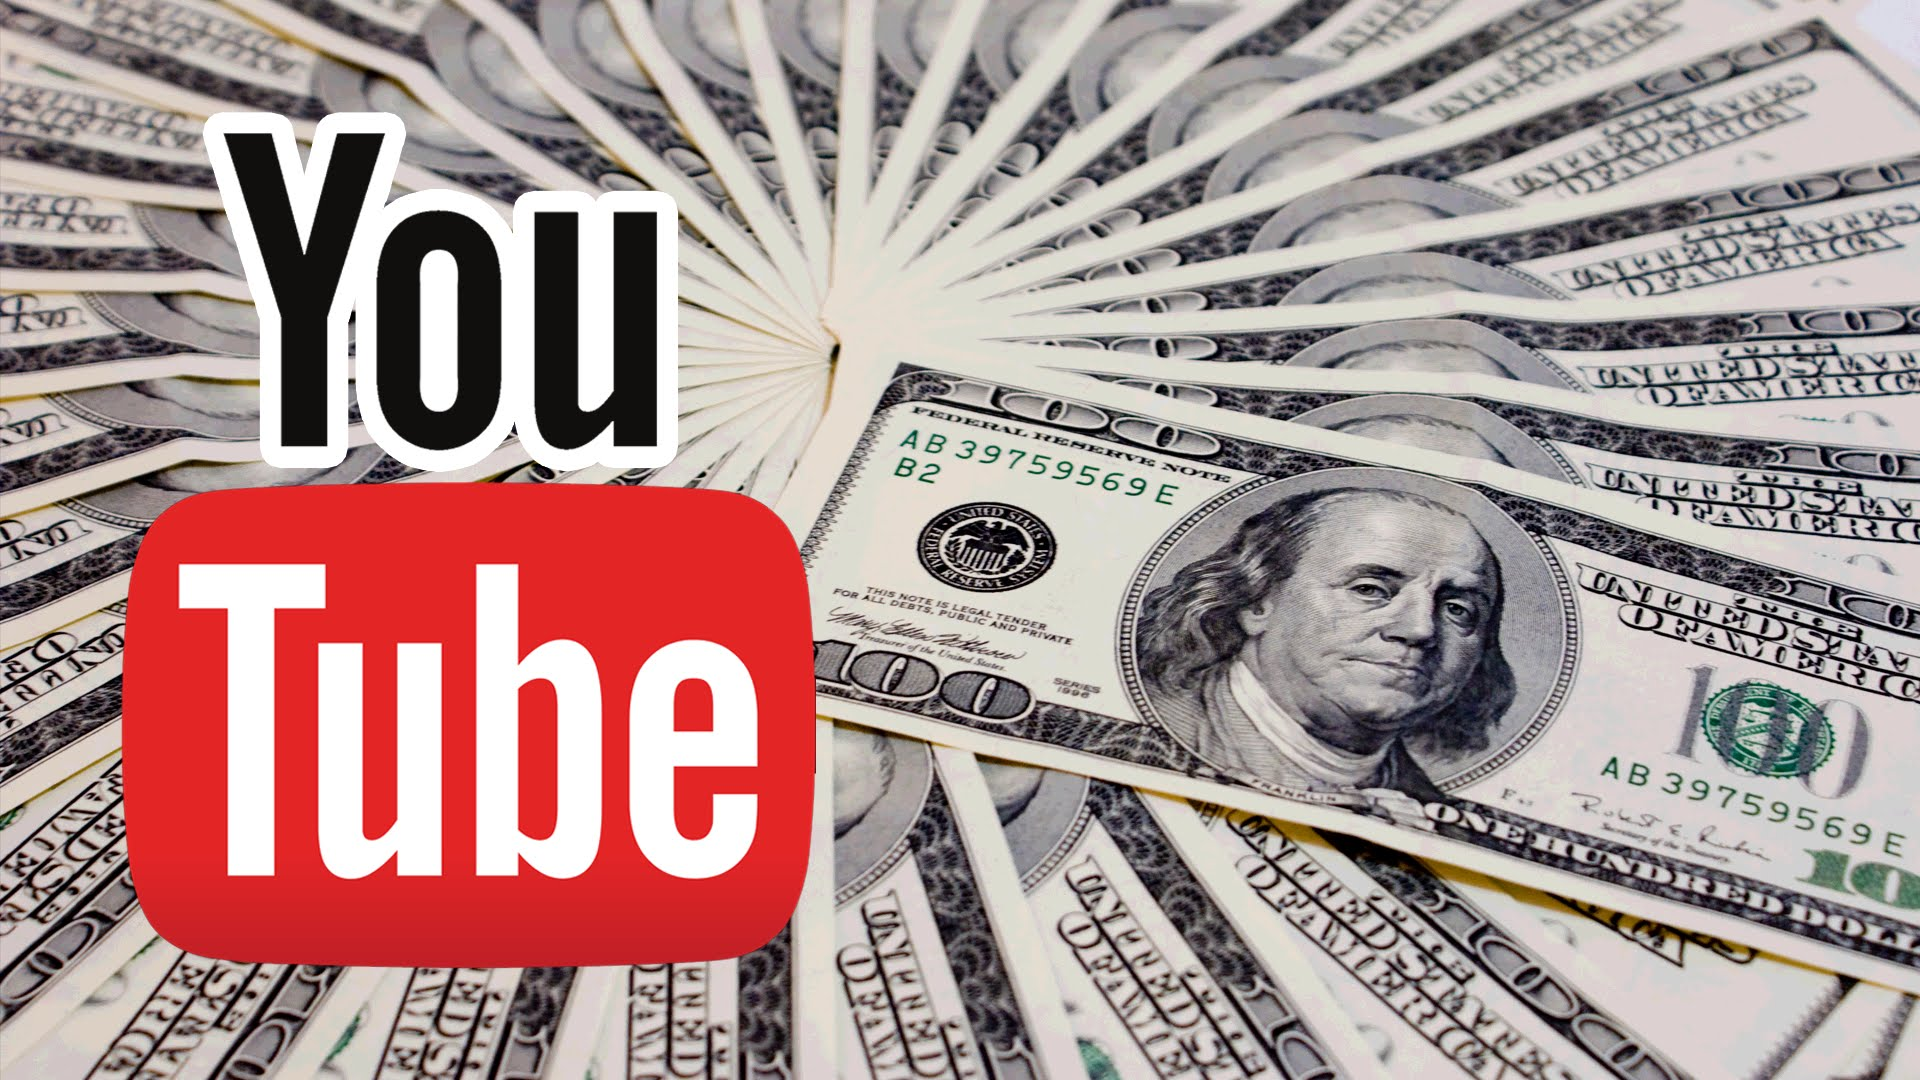 Come guadagnare soldi con YouTube